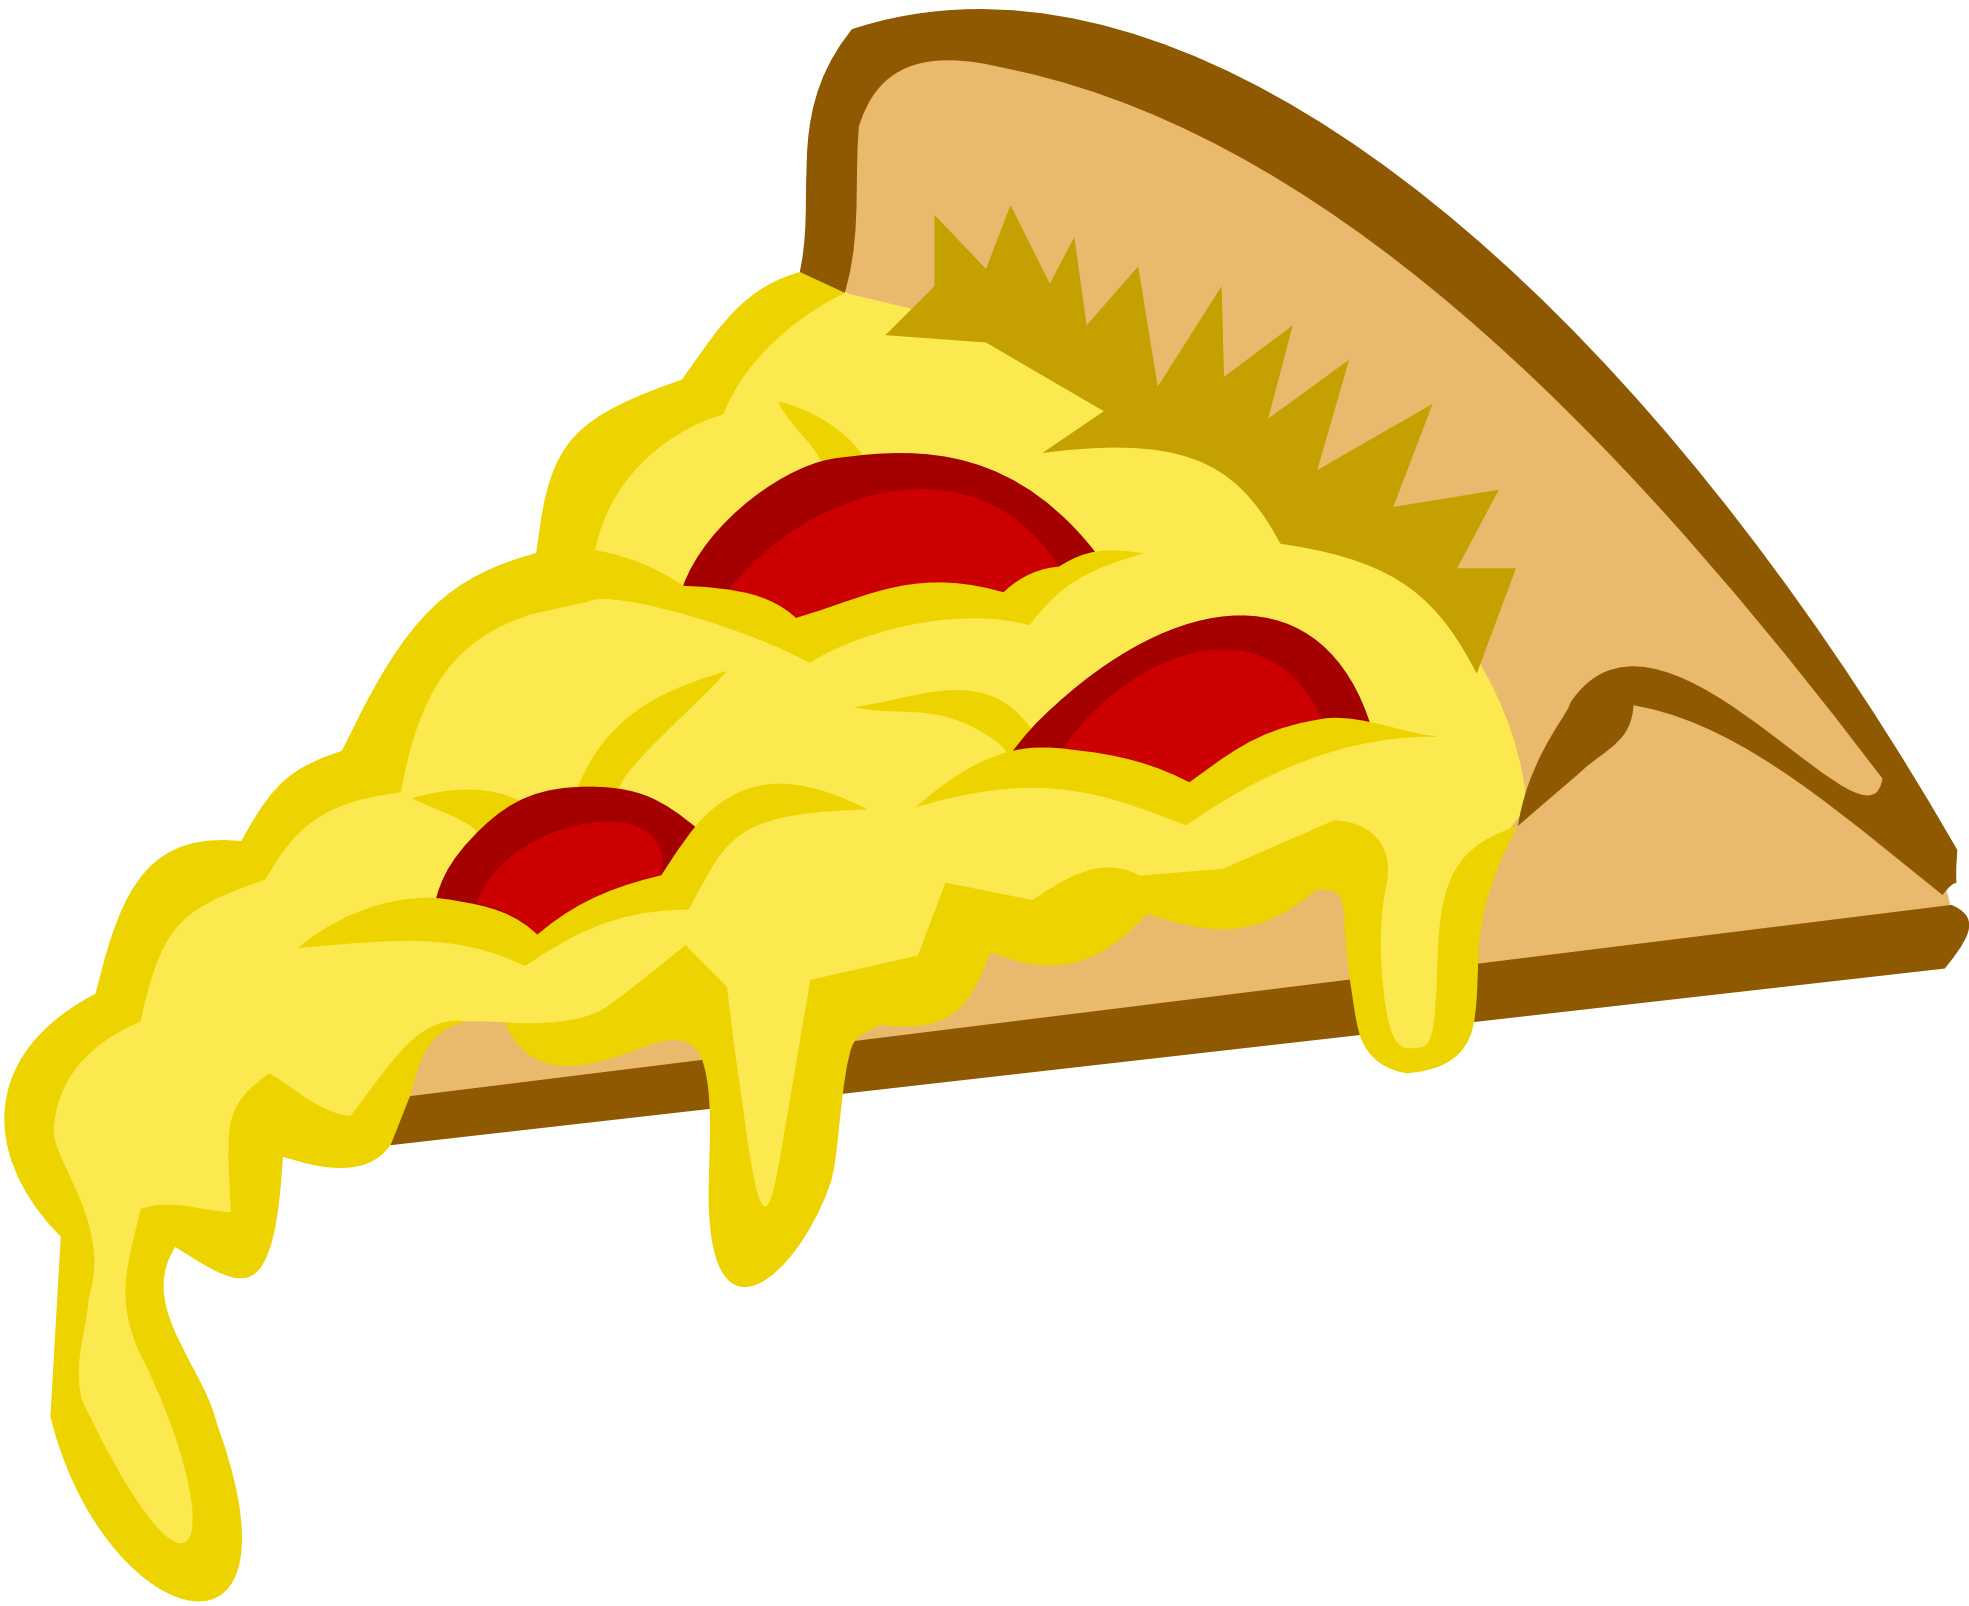 Pizza Slice Graphic | Clipart Panda - Free Clipart Images